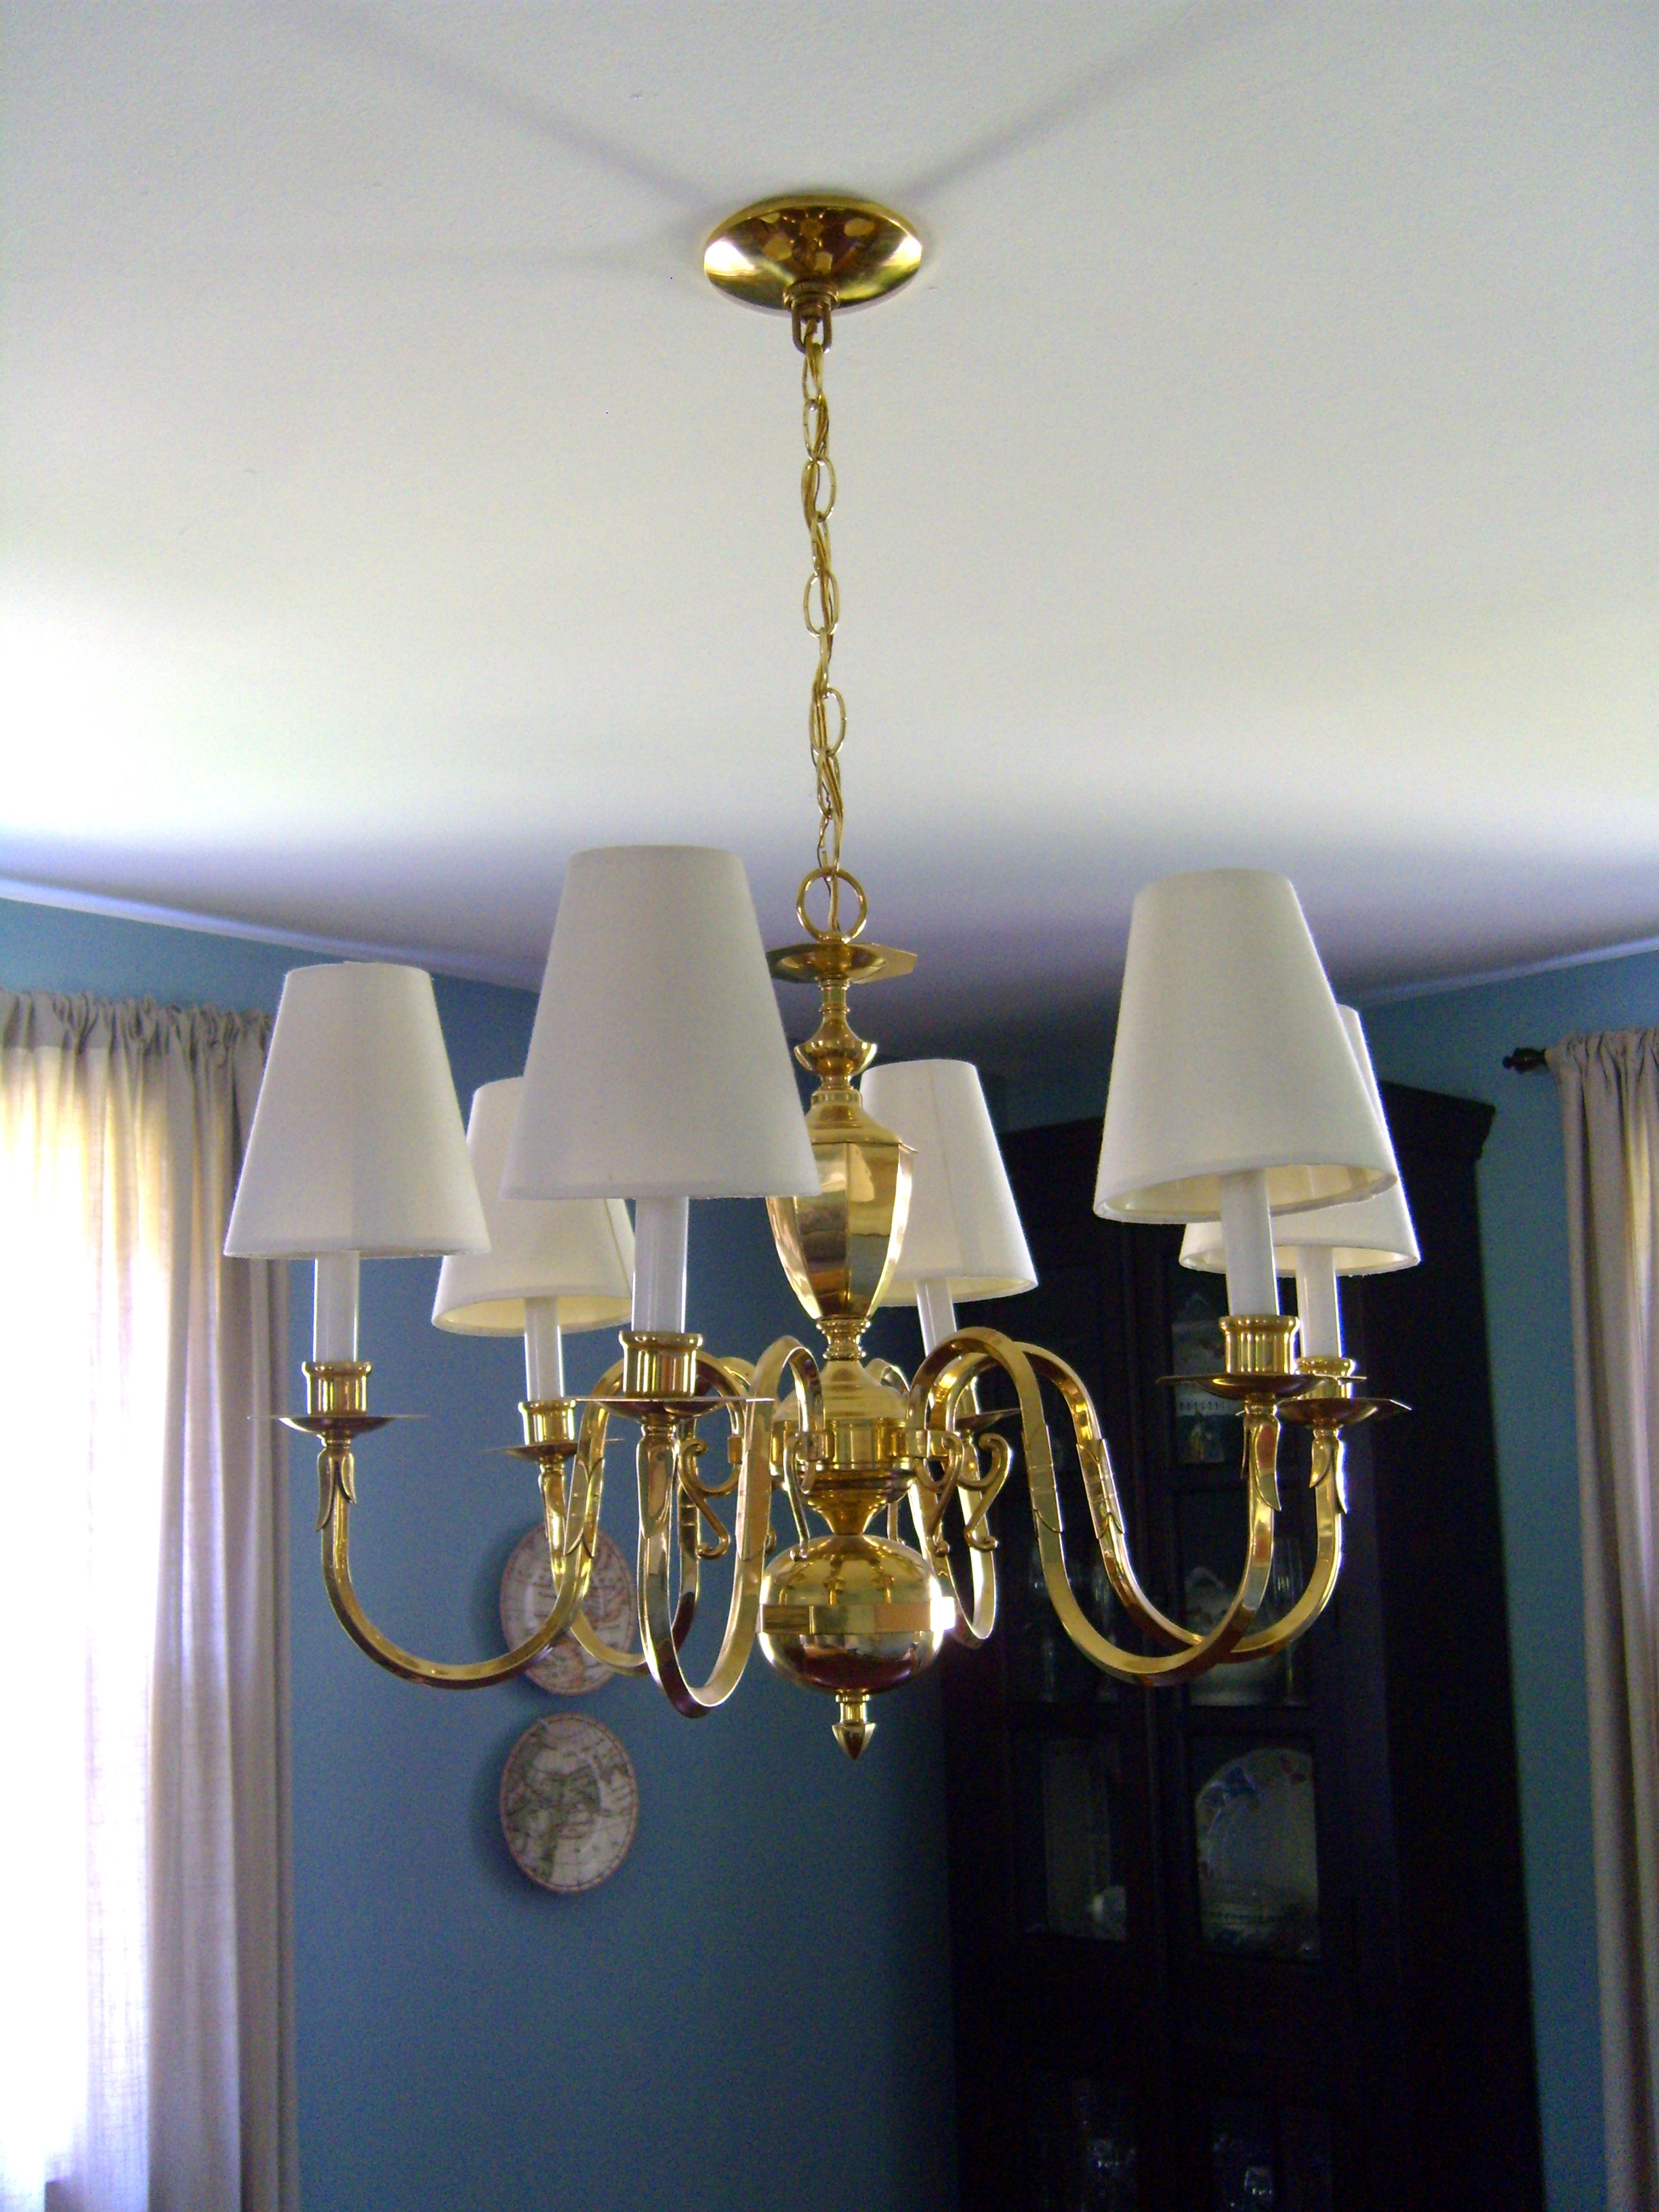 Chandeliers With Lamp Shades Within Most Current Chandelier Lamp Shades Drum Shape Tab Blackover Drumless Less Shade (View 2 of 20)